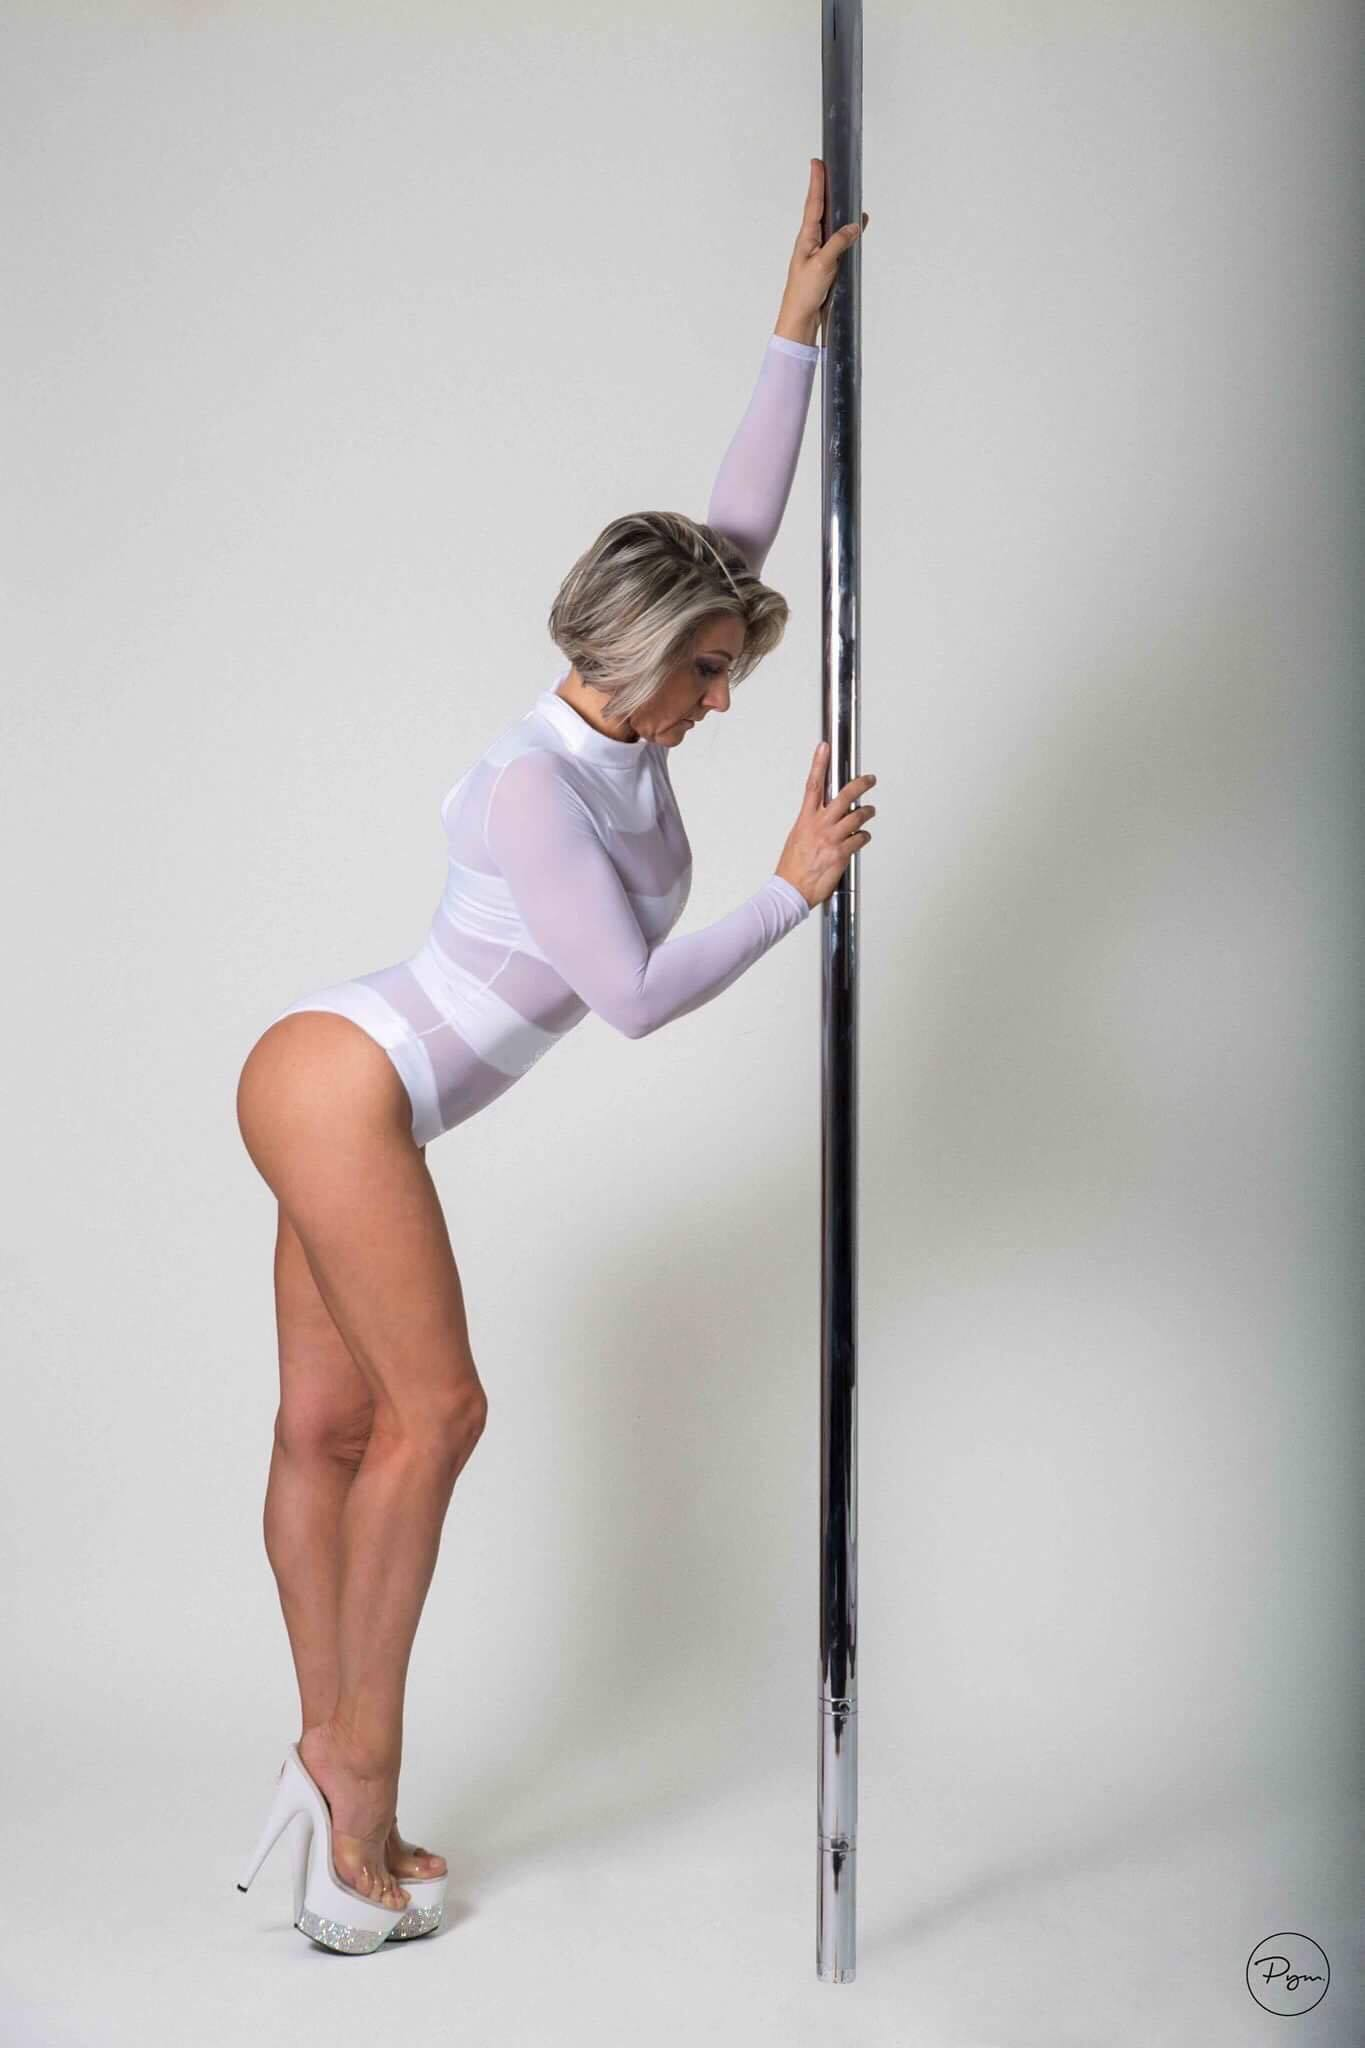 Pole dance sensations melun 77